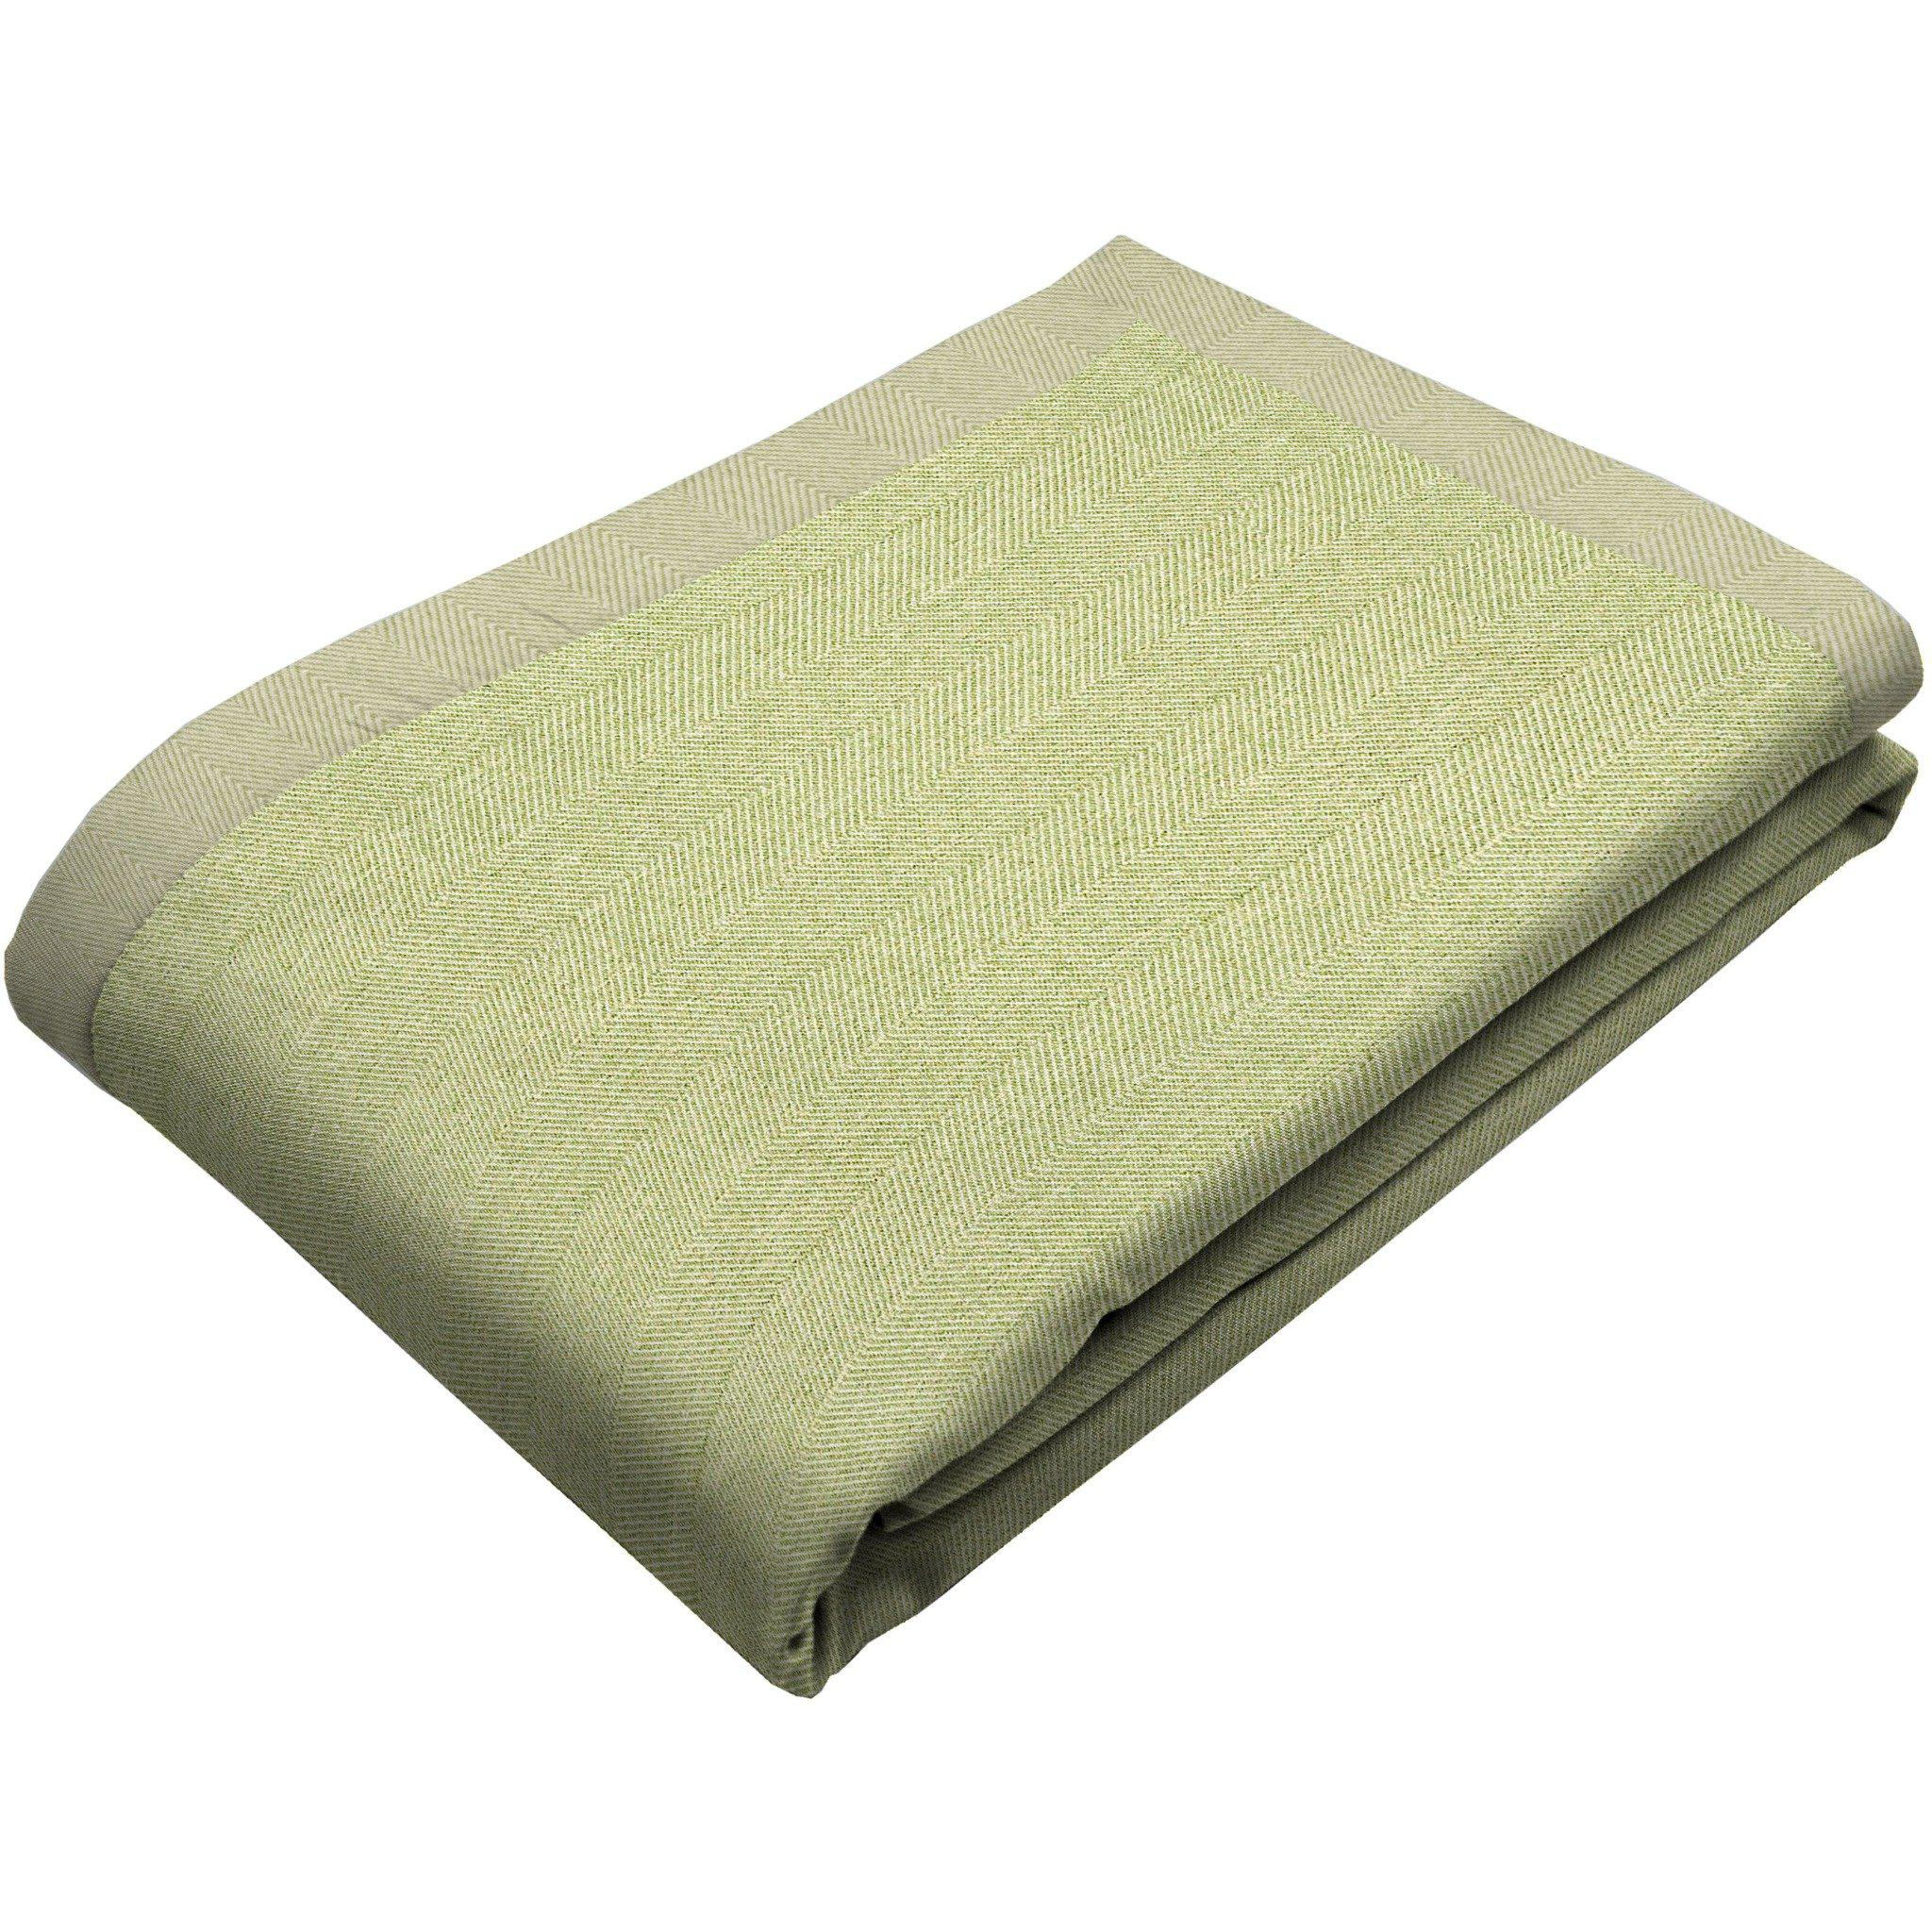 McAlister Textiles Herringbone Sage Green Throws & Runners Throws and Runners Bed Runner (50cm x 240cm)